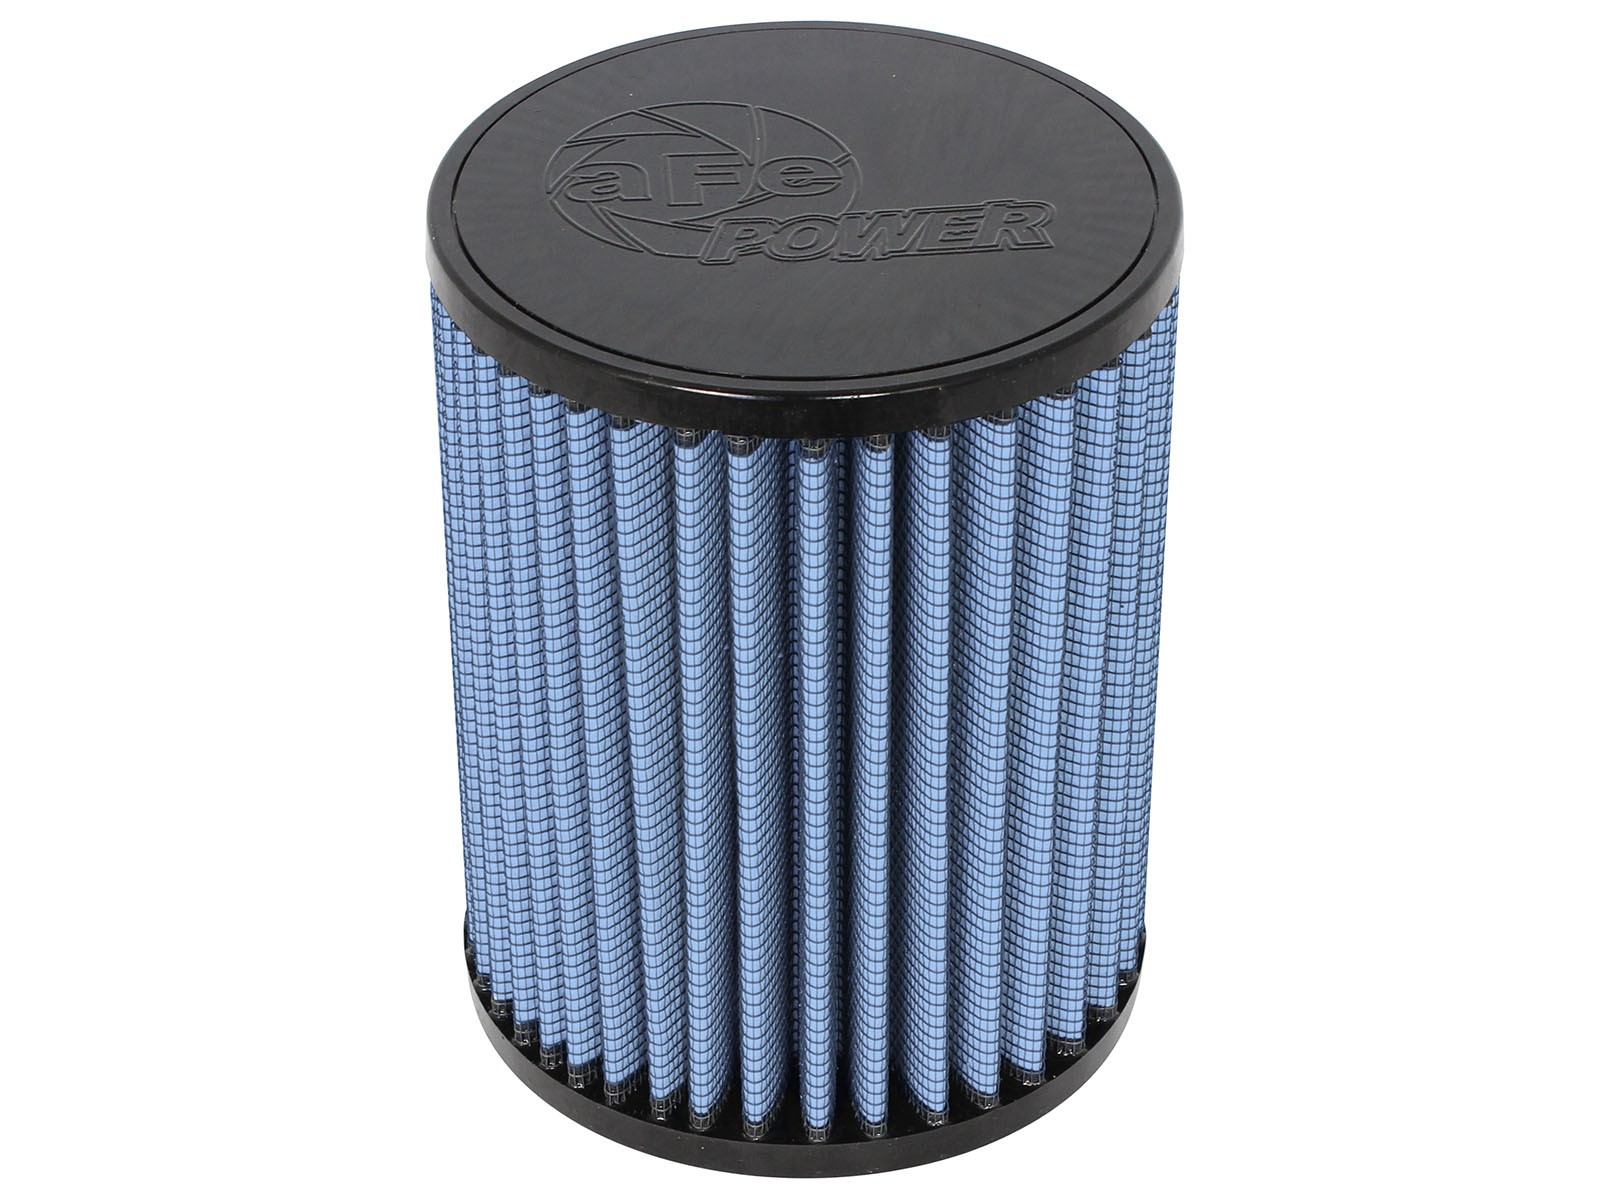 aFe POWER 10-10060 Magnum FLOW Pro 5R Air Filter